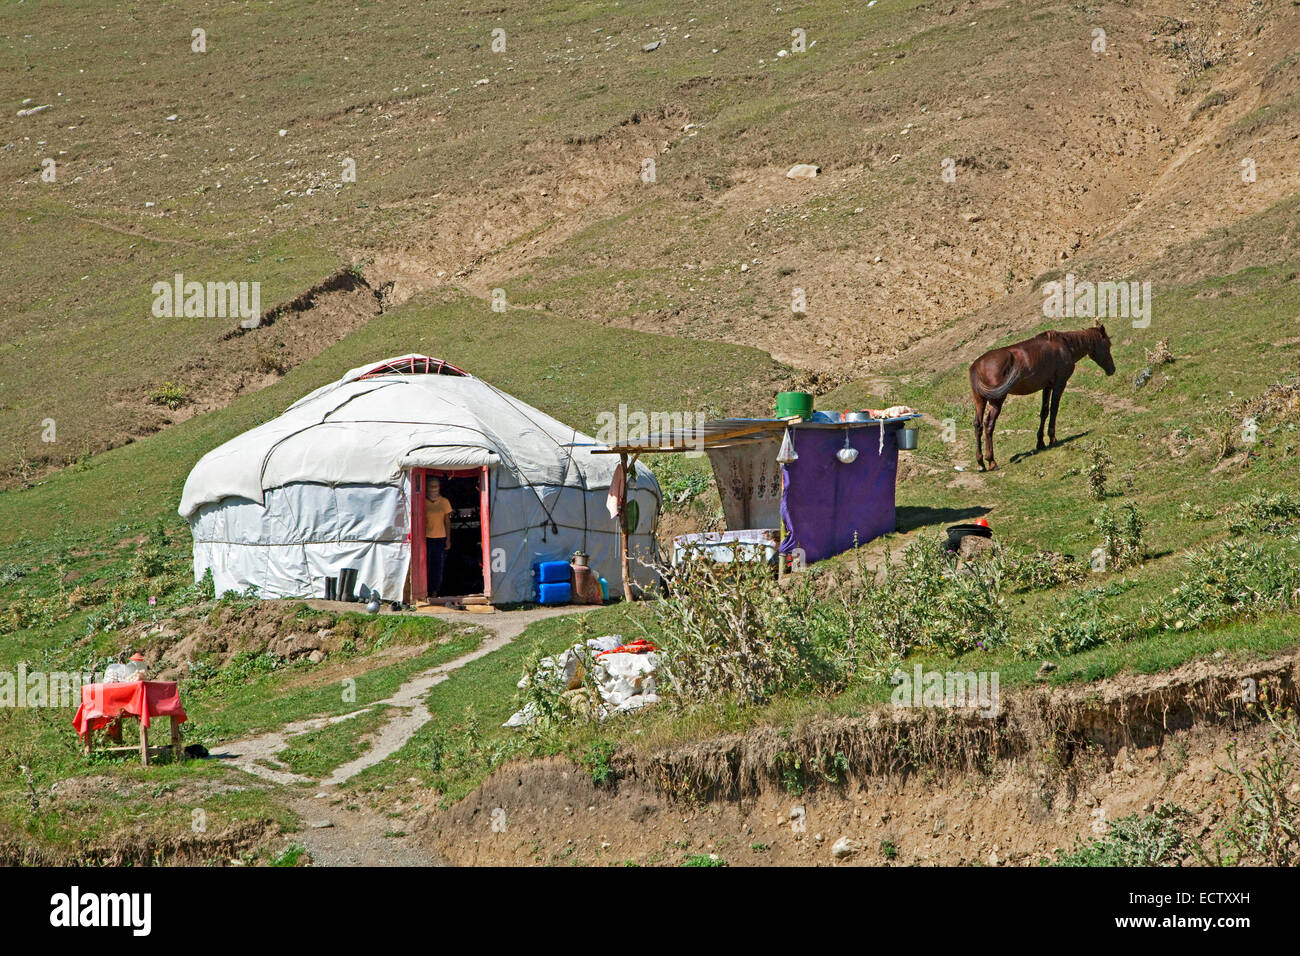 Kyrgyz yurt, temporary summer nomad dwelling in the mountains in the Osh Province, Kyrgyzstan - Stock Image